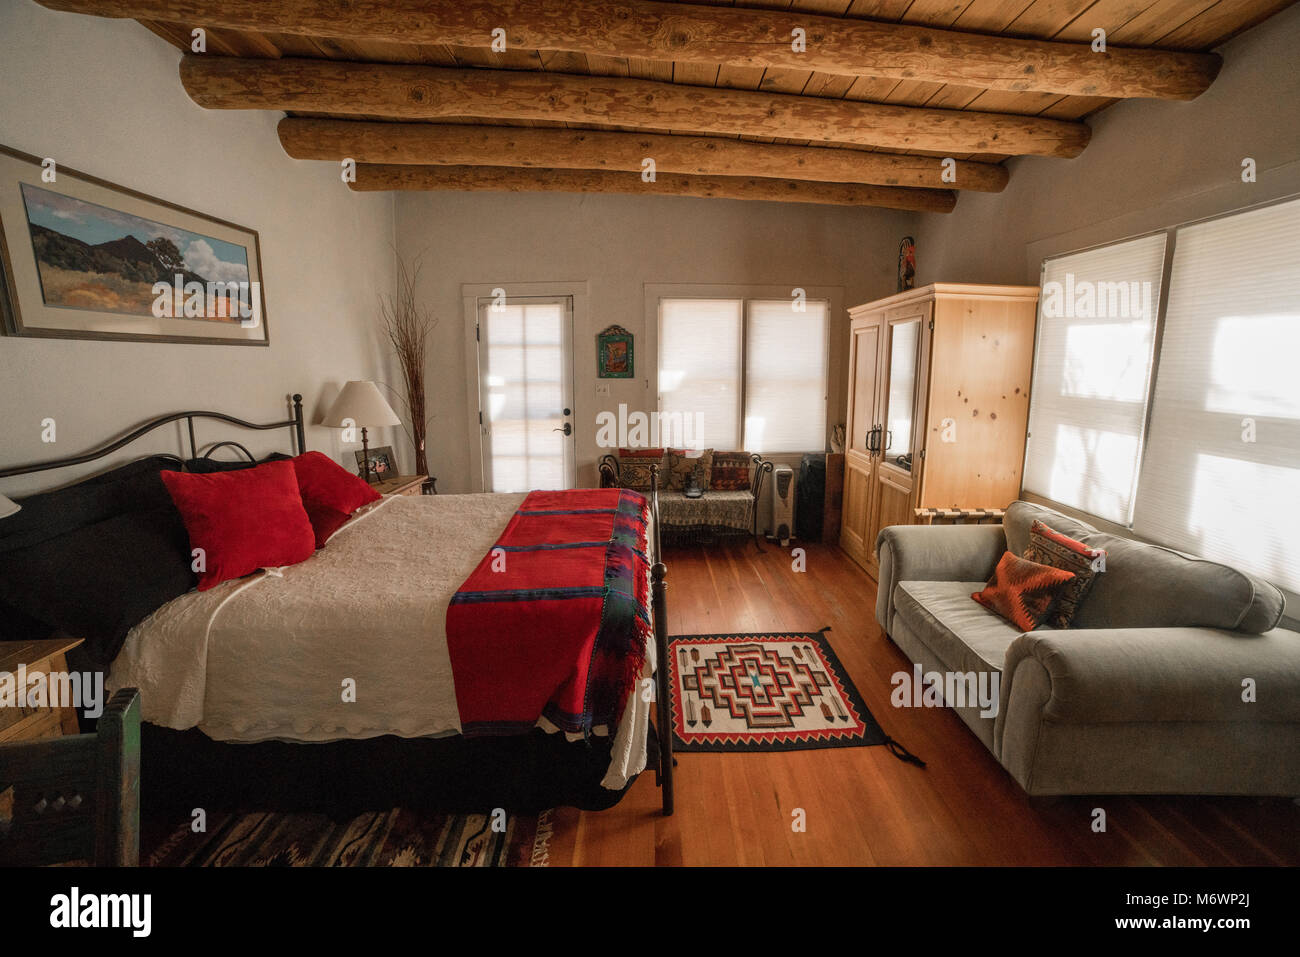 A Quaint Santa Fe, New Mexico Bedroom In An Adobe Architecture Style Home  With Wooden Floors, Log Ceiling, And White Walls.